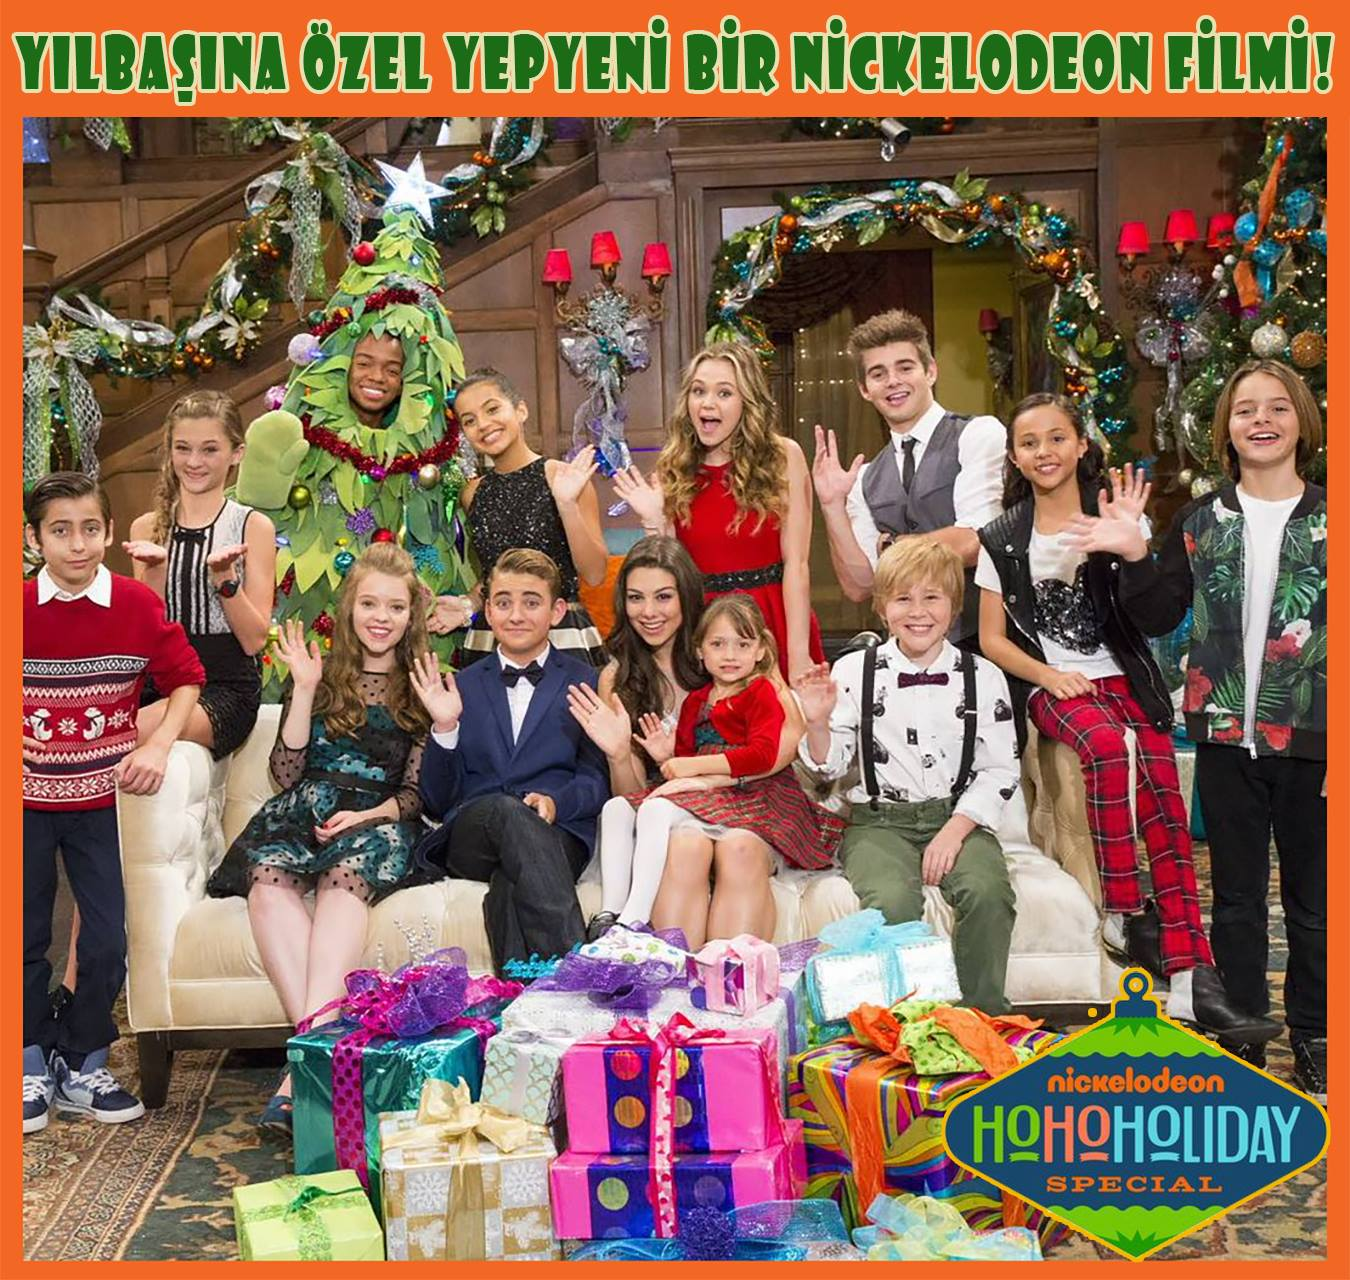 Nickelodeon Christmas Specials.Nickalive Nickelodeon Turkey To Premiere Nick S Ho Ho